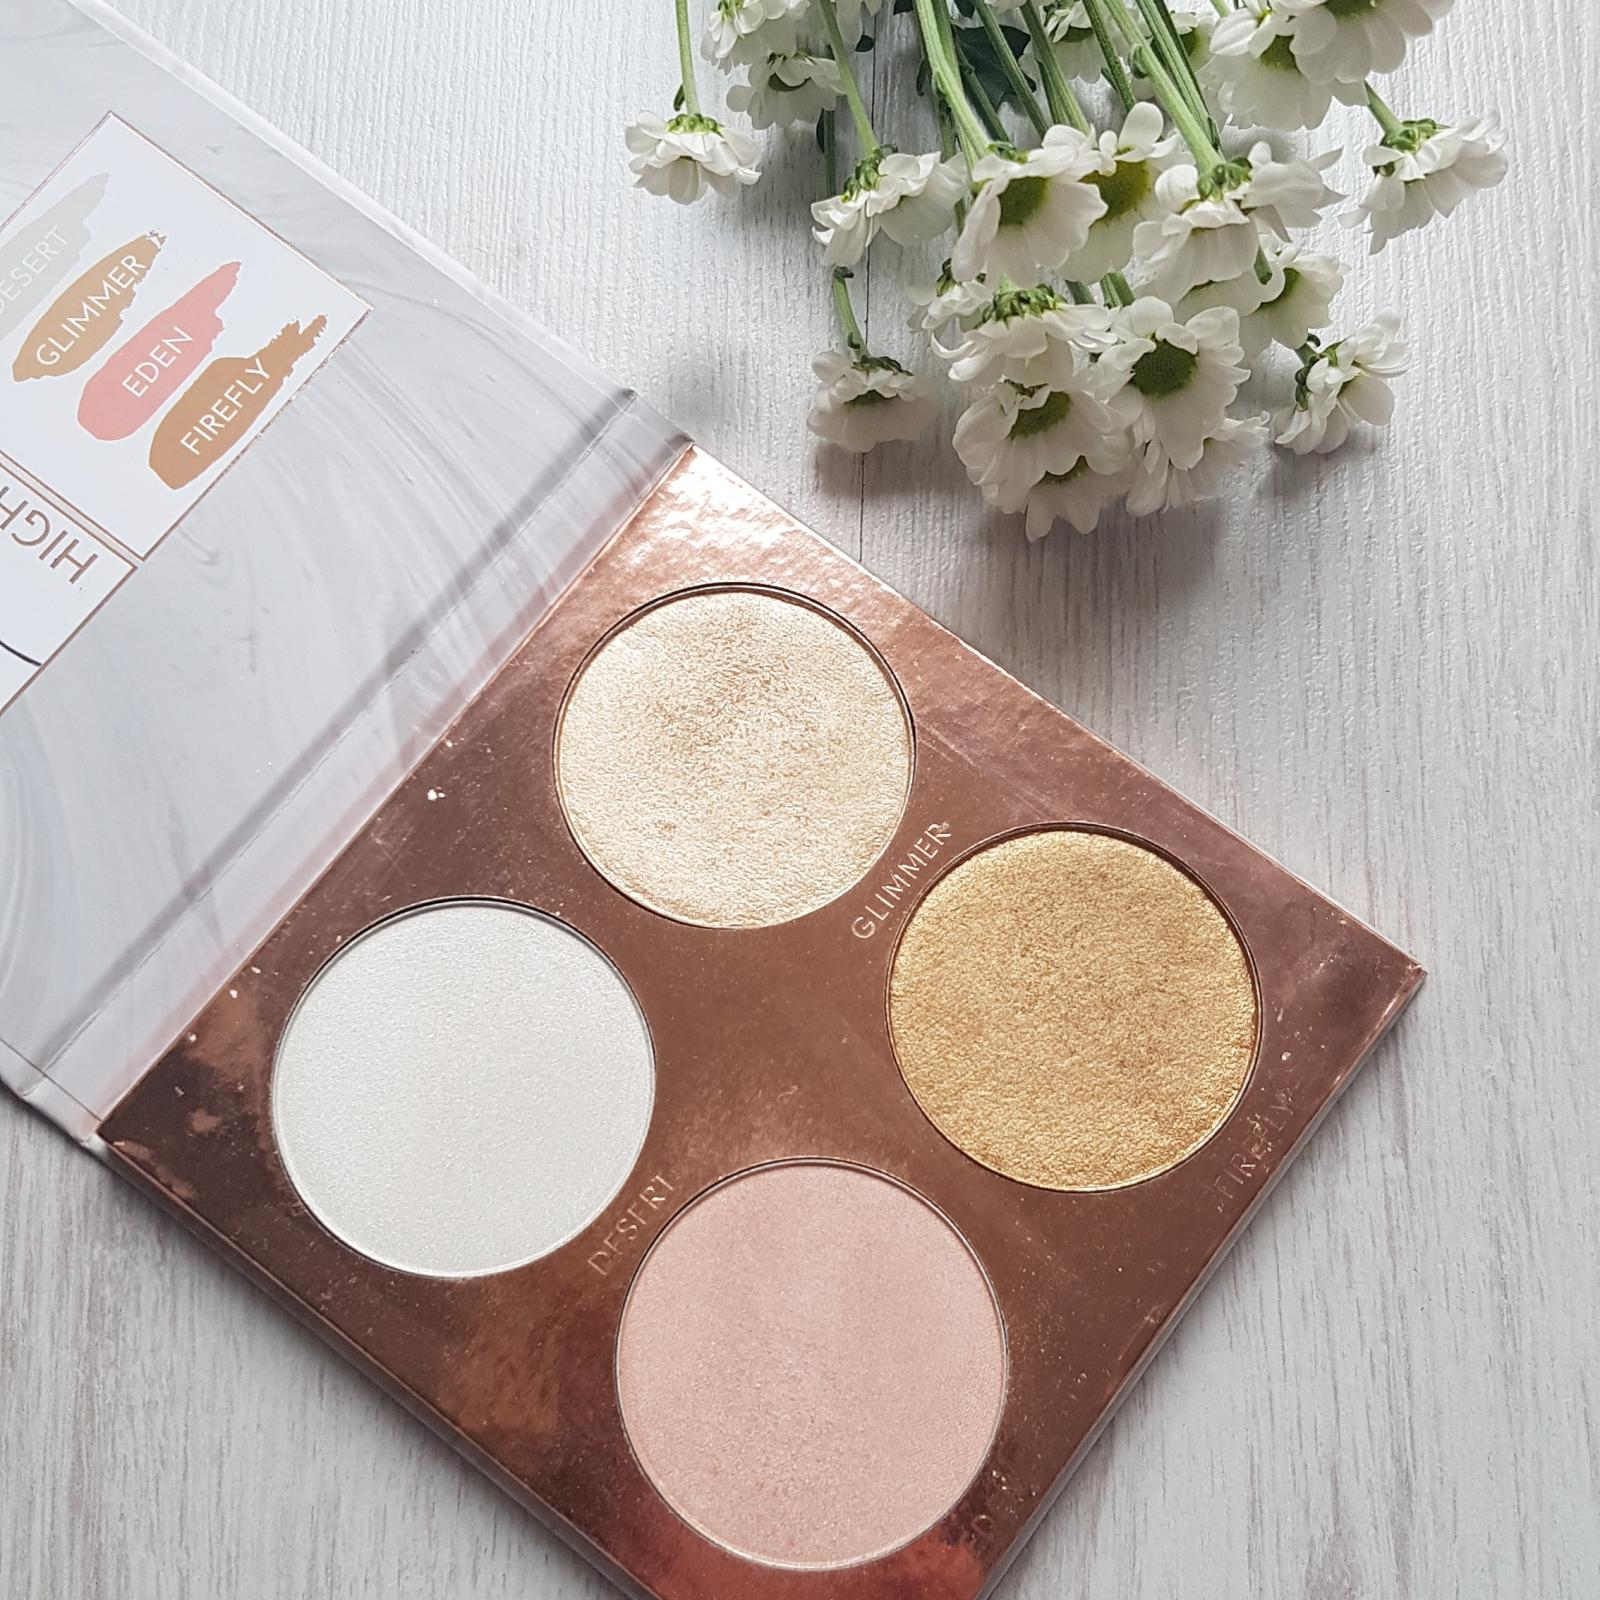 Primark Pure Glow Highlight Palette